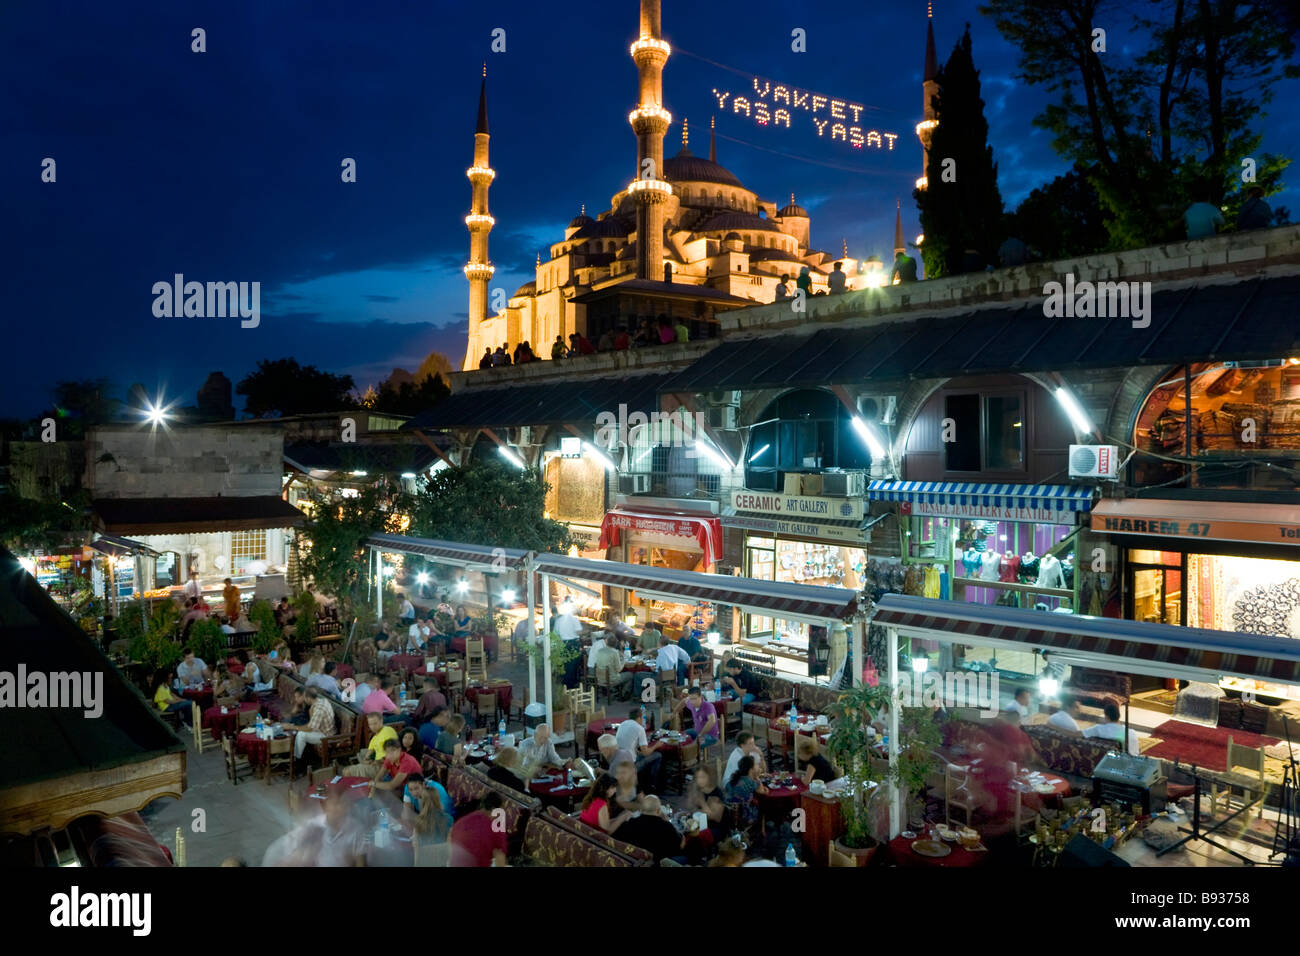 The Blue Mosque or Sultan Ahmet Mosque 1609 1616 restaurant Sultanahmet District Istanbul Turkey - Stock Image